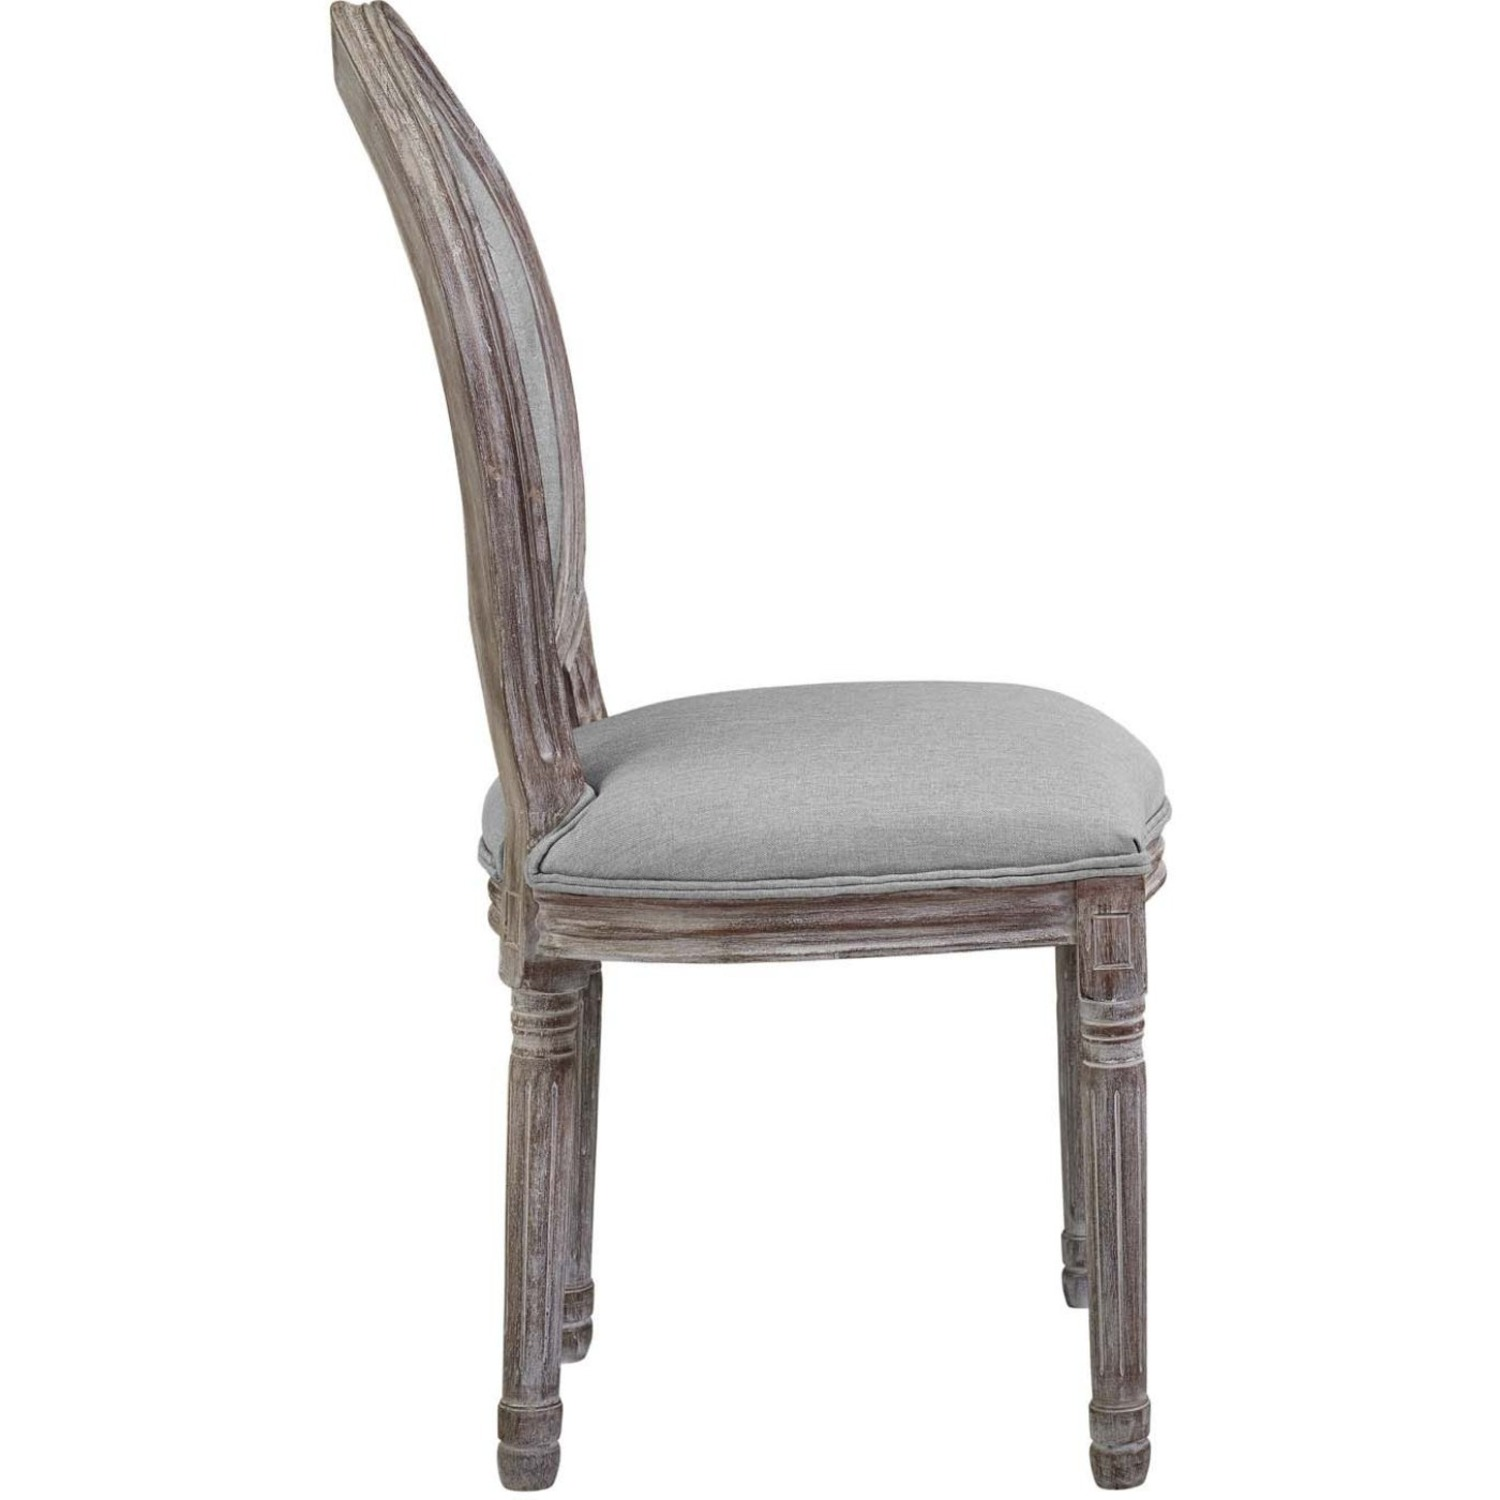 Traditional Dining Chair In Light Gray Finish - image-1